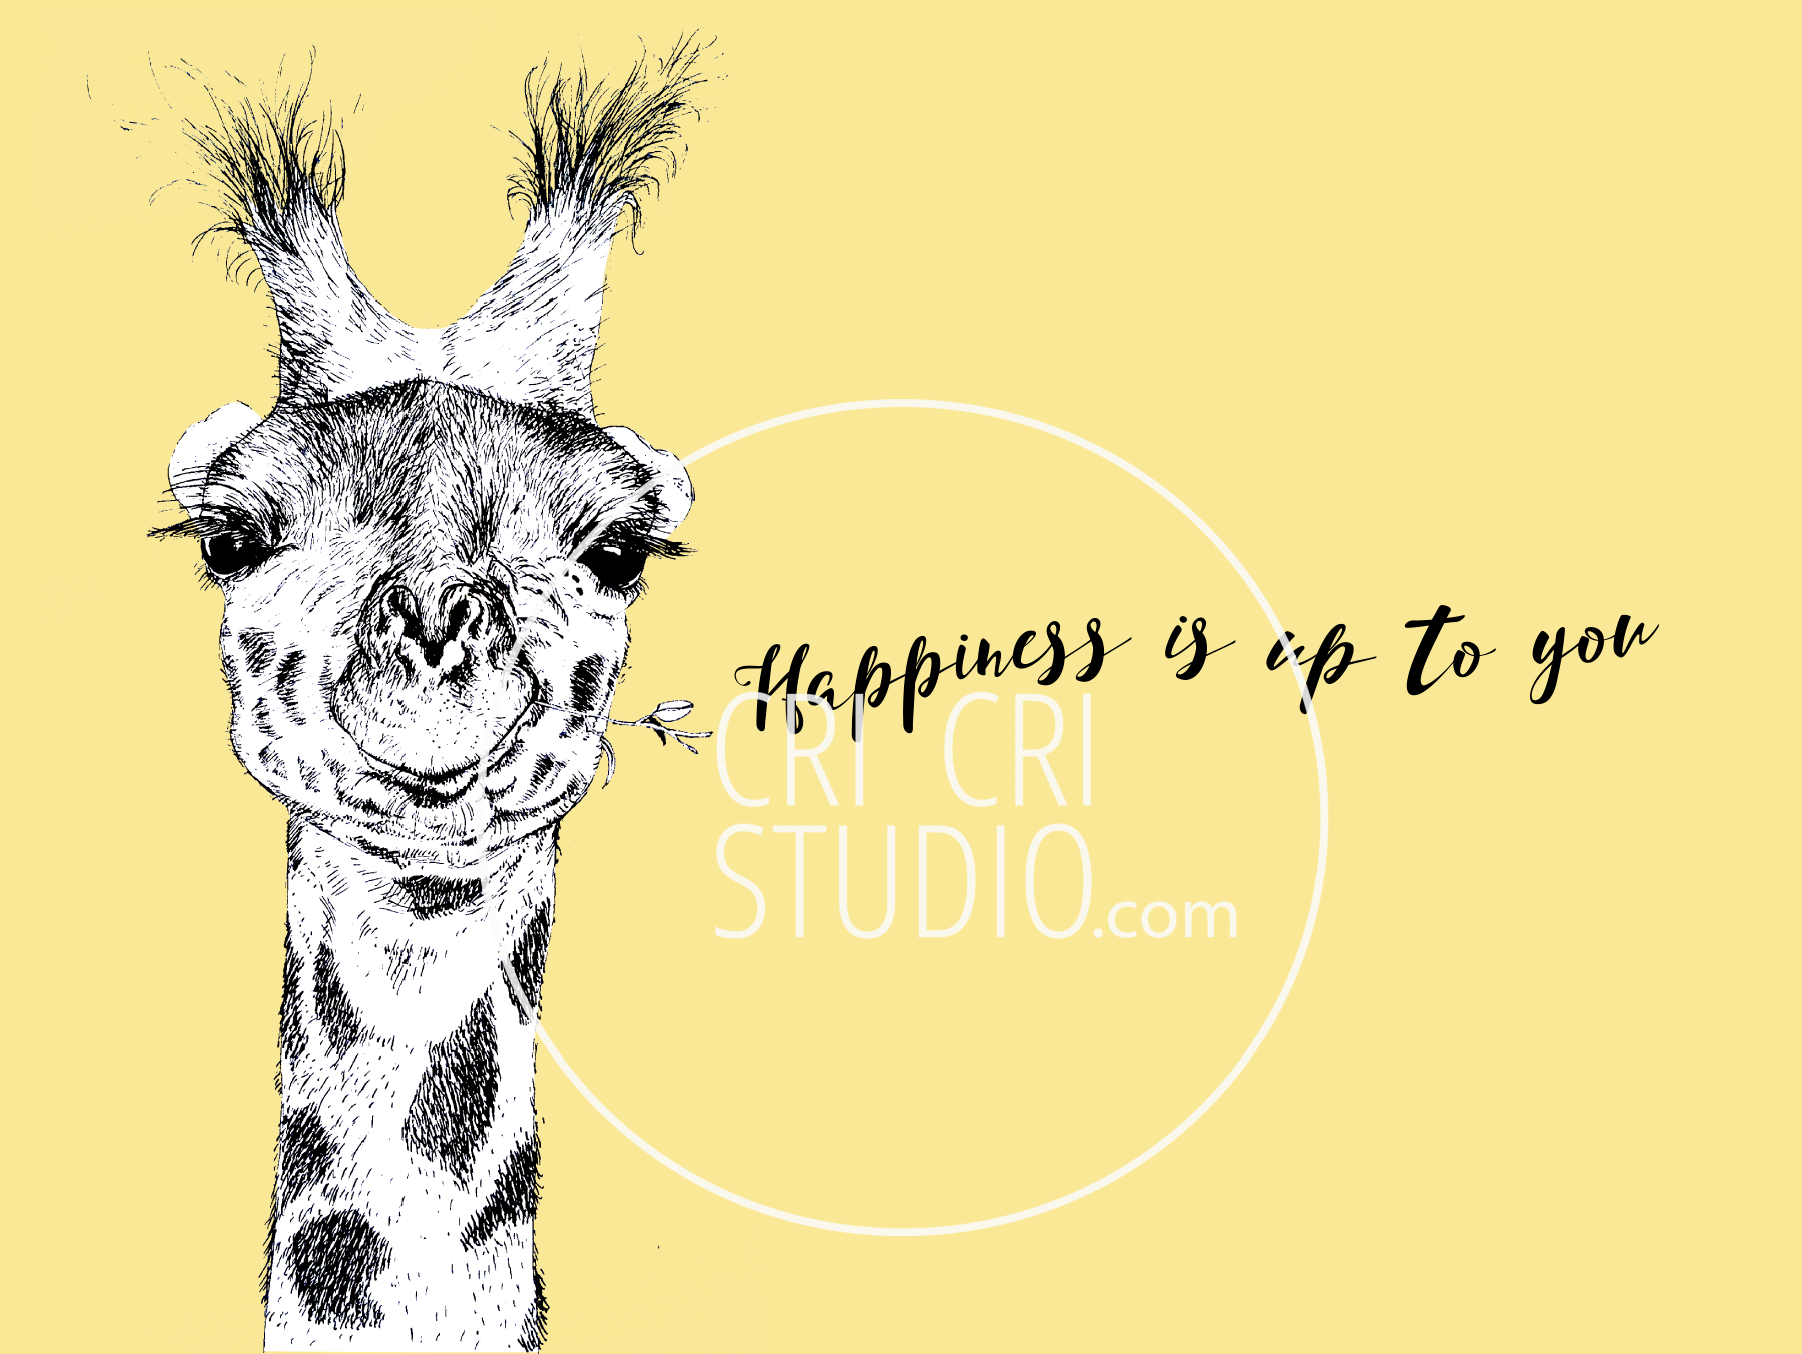 Happy Giraffe by Cri Cri Studio